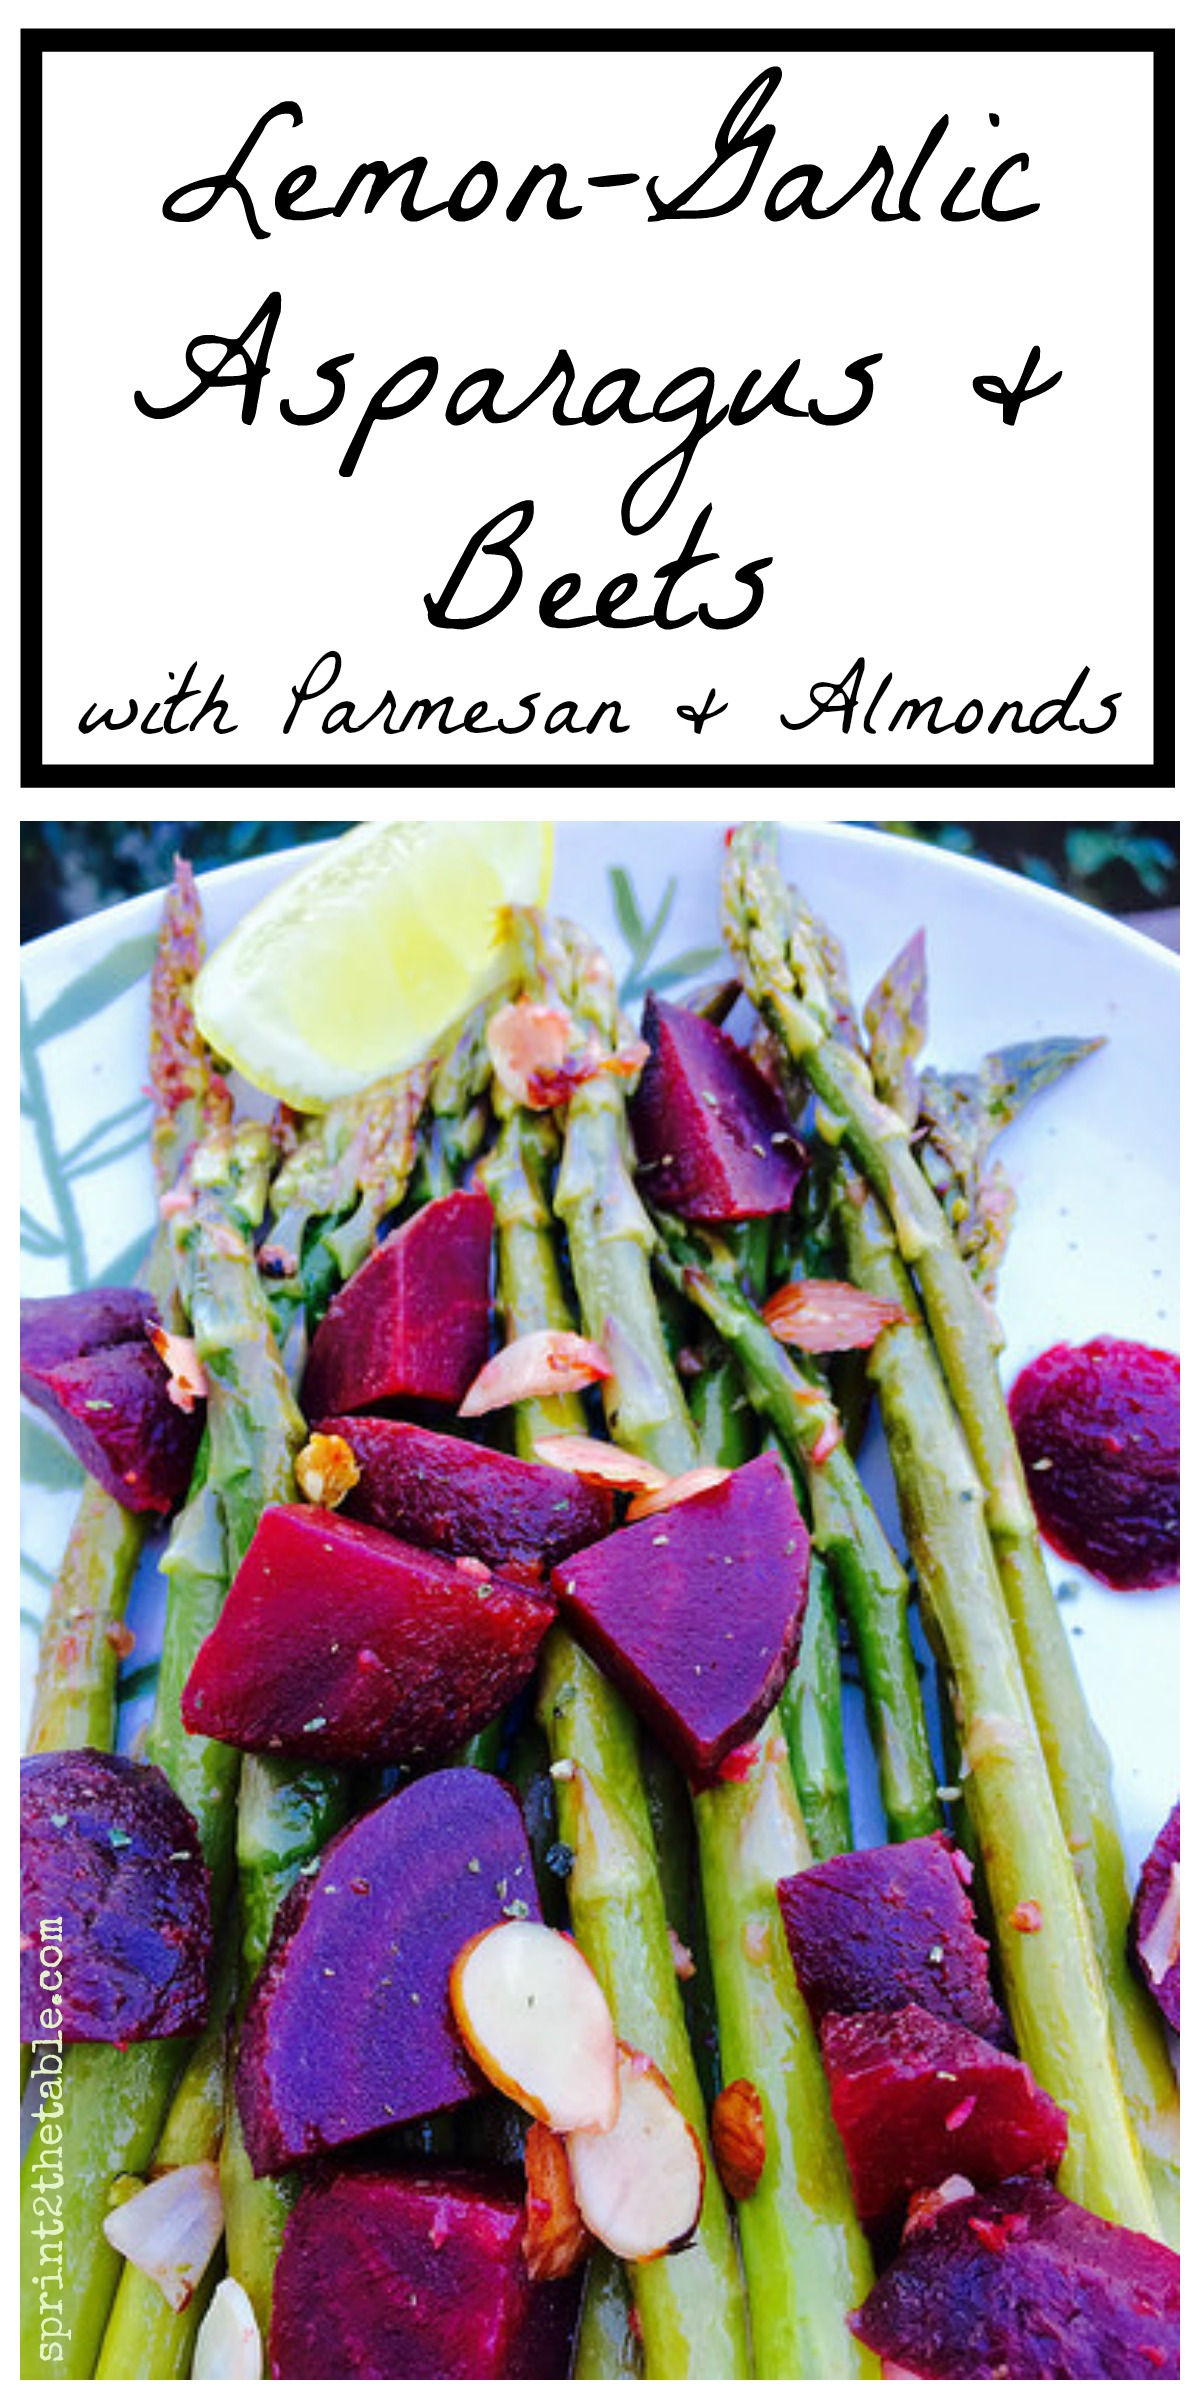 Lemon-Garlic Asparagus & Beets with Parmesan & Almonds - it doesn't get more spring!